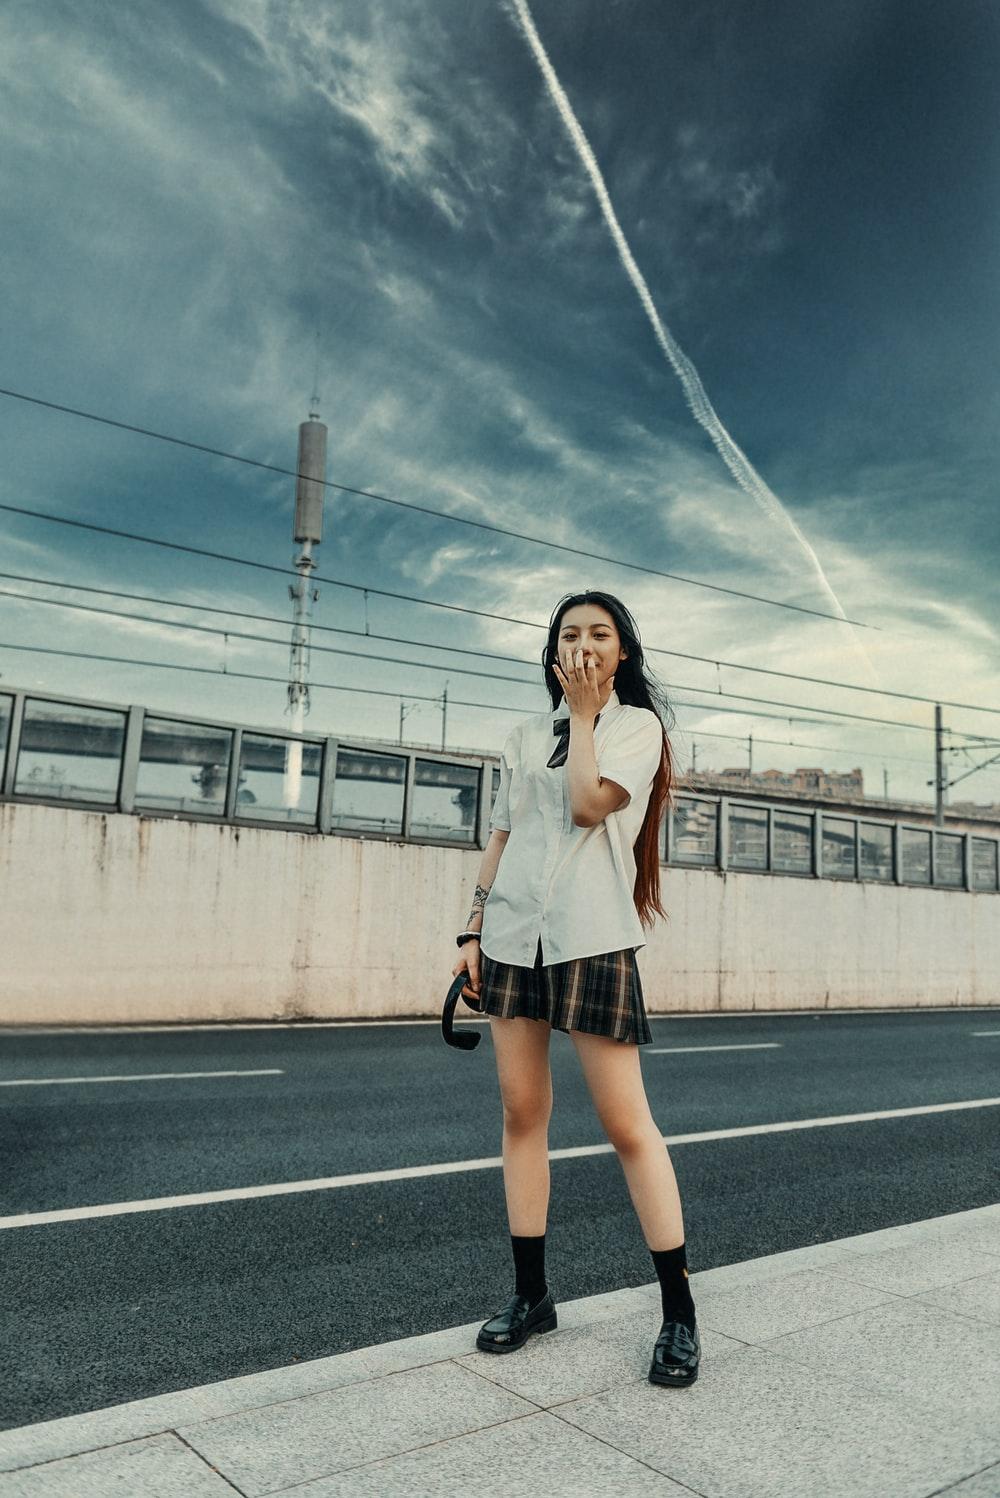 woman in white shirt and black skirt standing on road during daytime